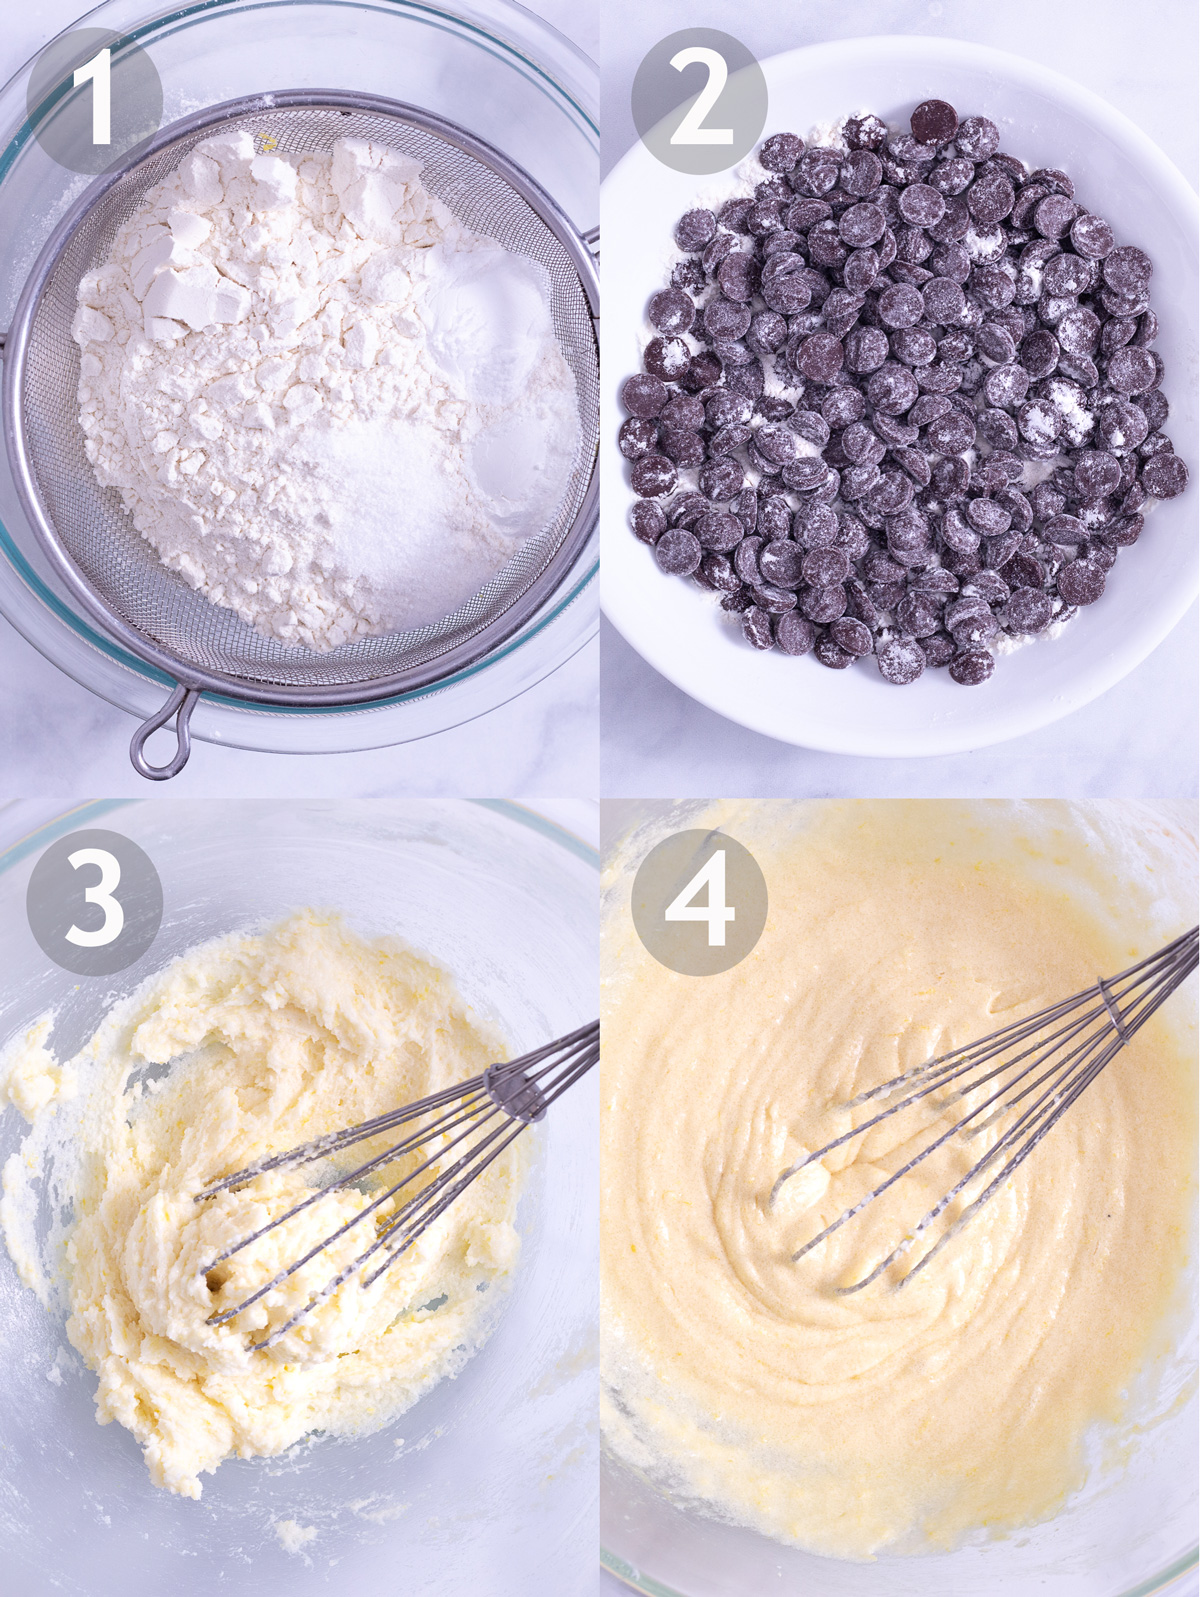 First 4 steps to make chocolate chip muffins including sifting dry ingredients, coating chocolate chips in flour, and whisking sugar, butter and eggs.